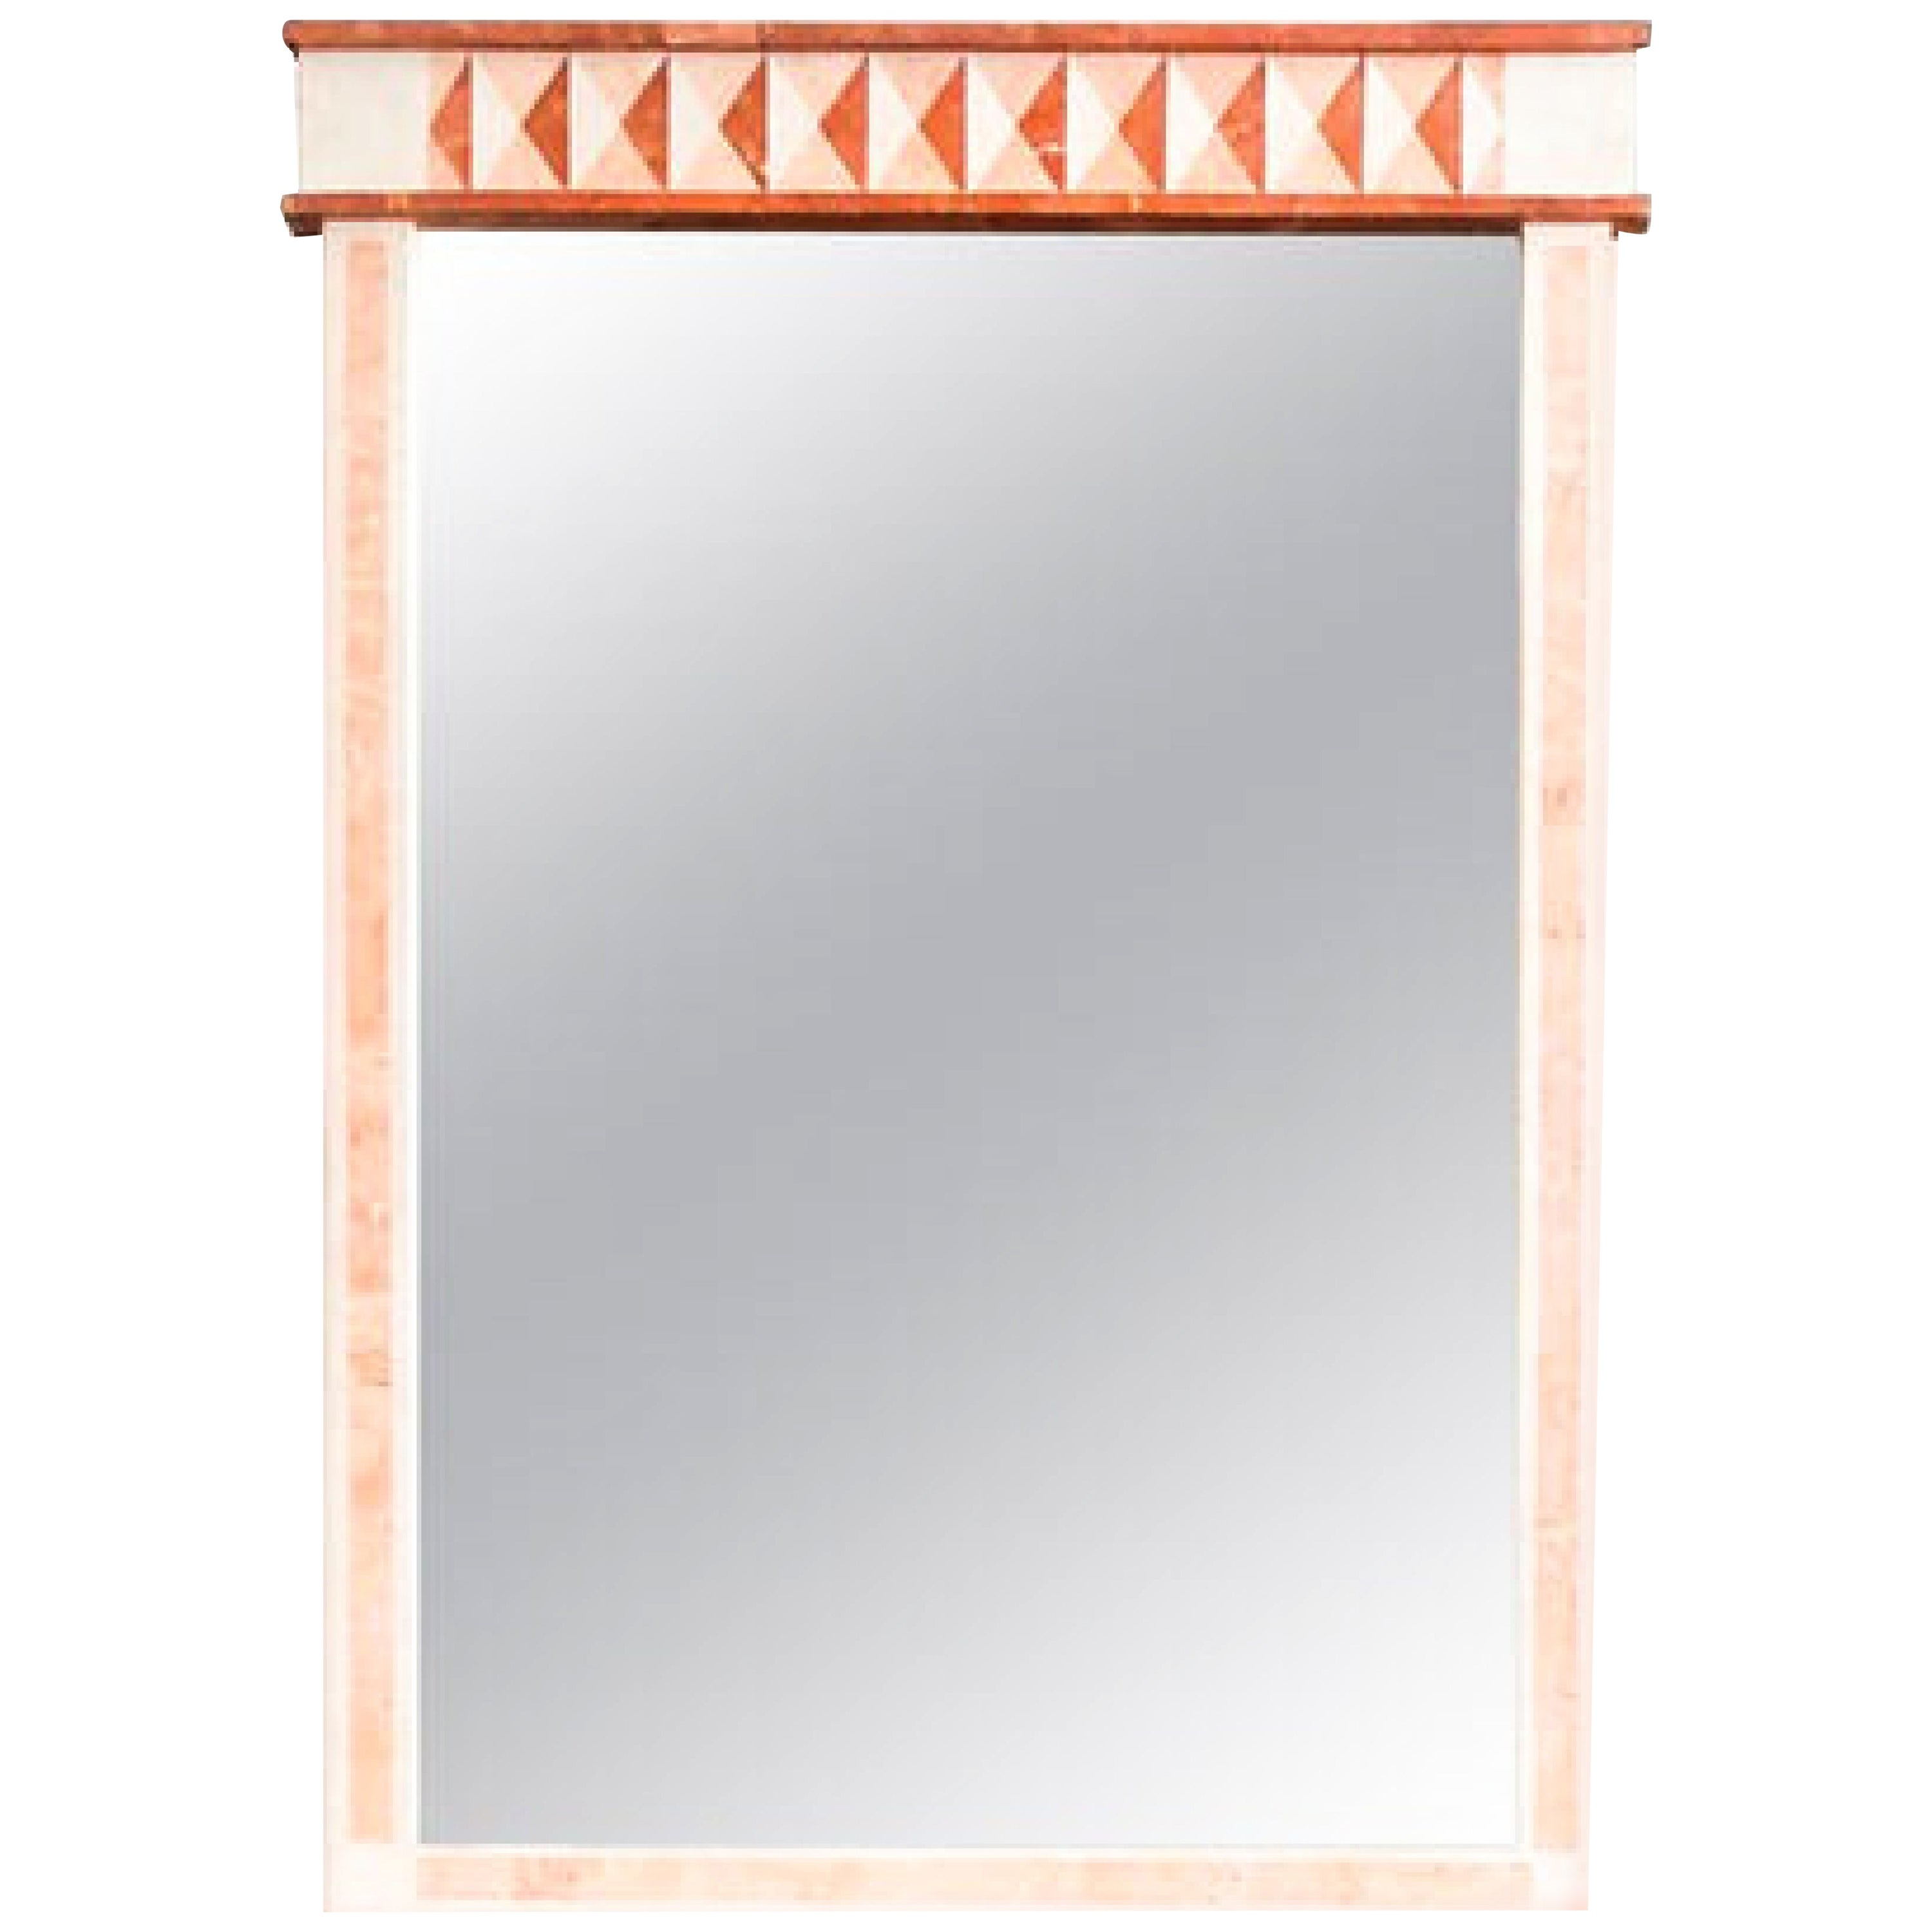 Vintage Neoclassical Postmodern Maitland-Smith Marble Wall Mirror, Tessellated